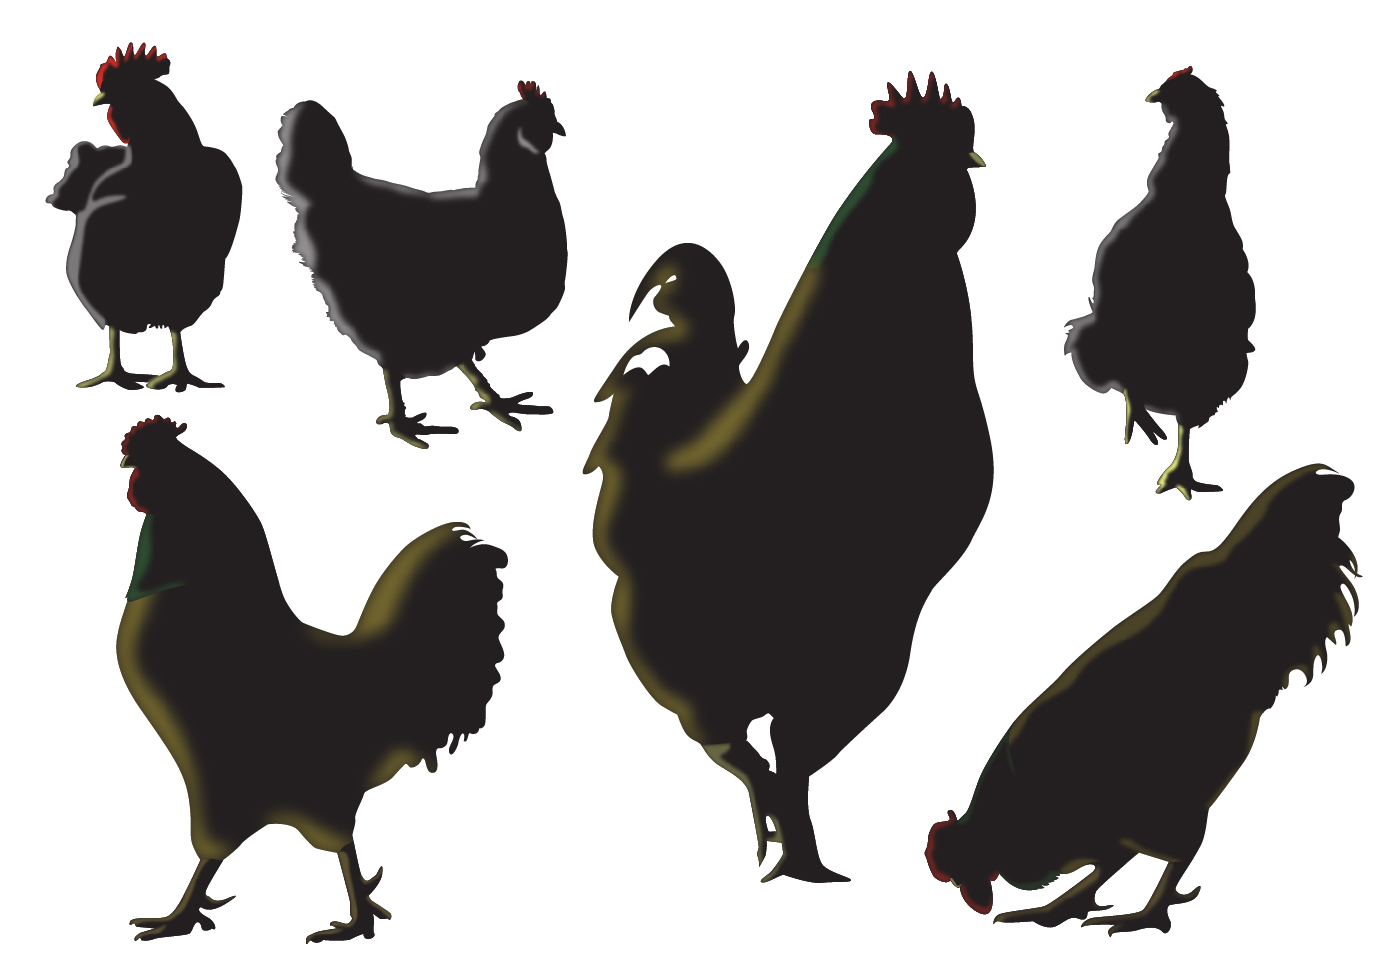 Chicken Svg: Rooster Silhouette Vectors